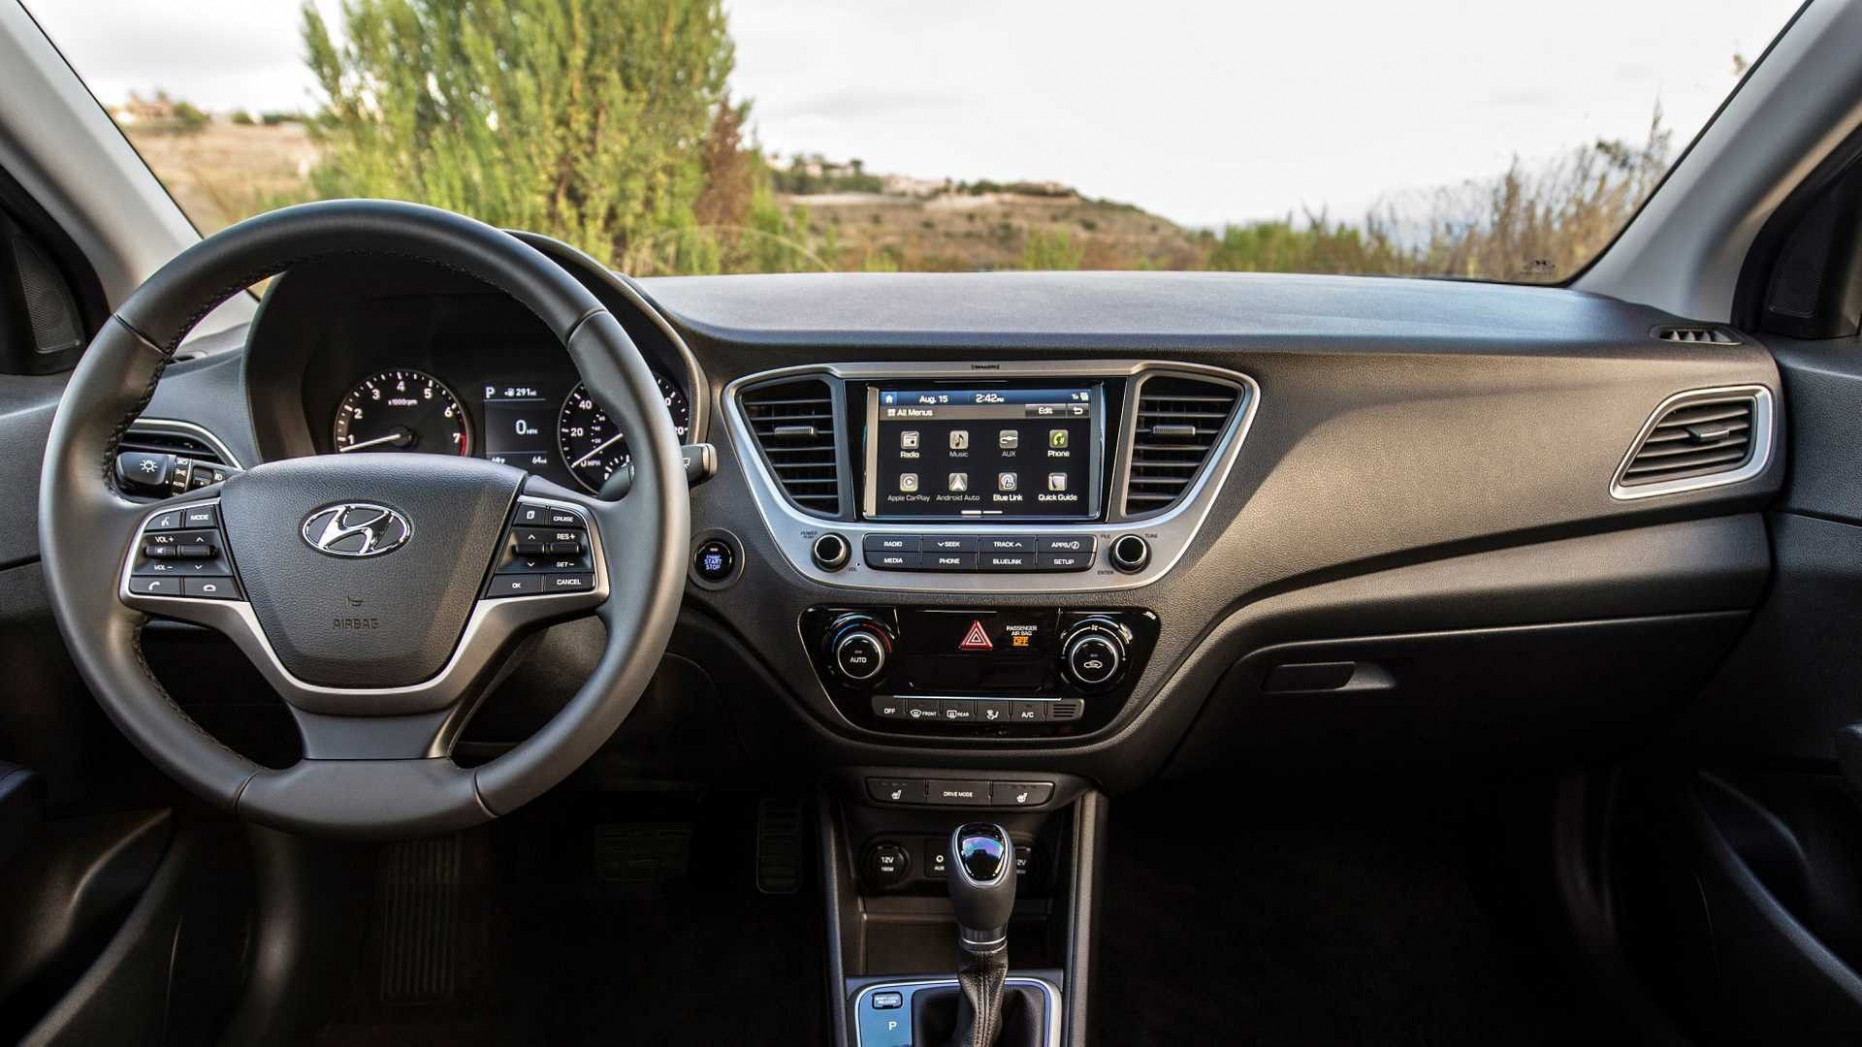 Hyundai Hatchback Accent 10 Review and Specs | Hyundai accent ..